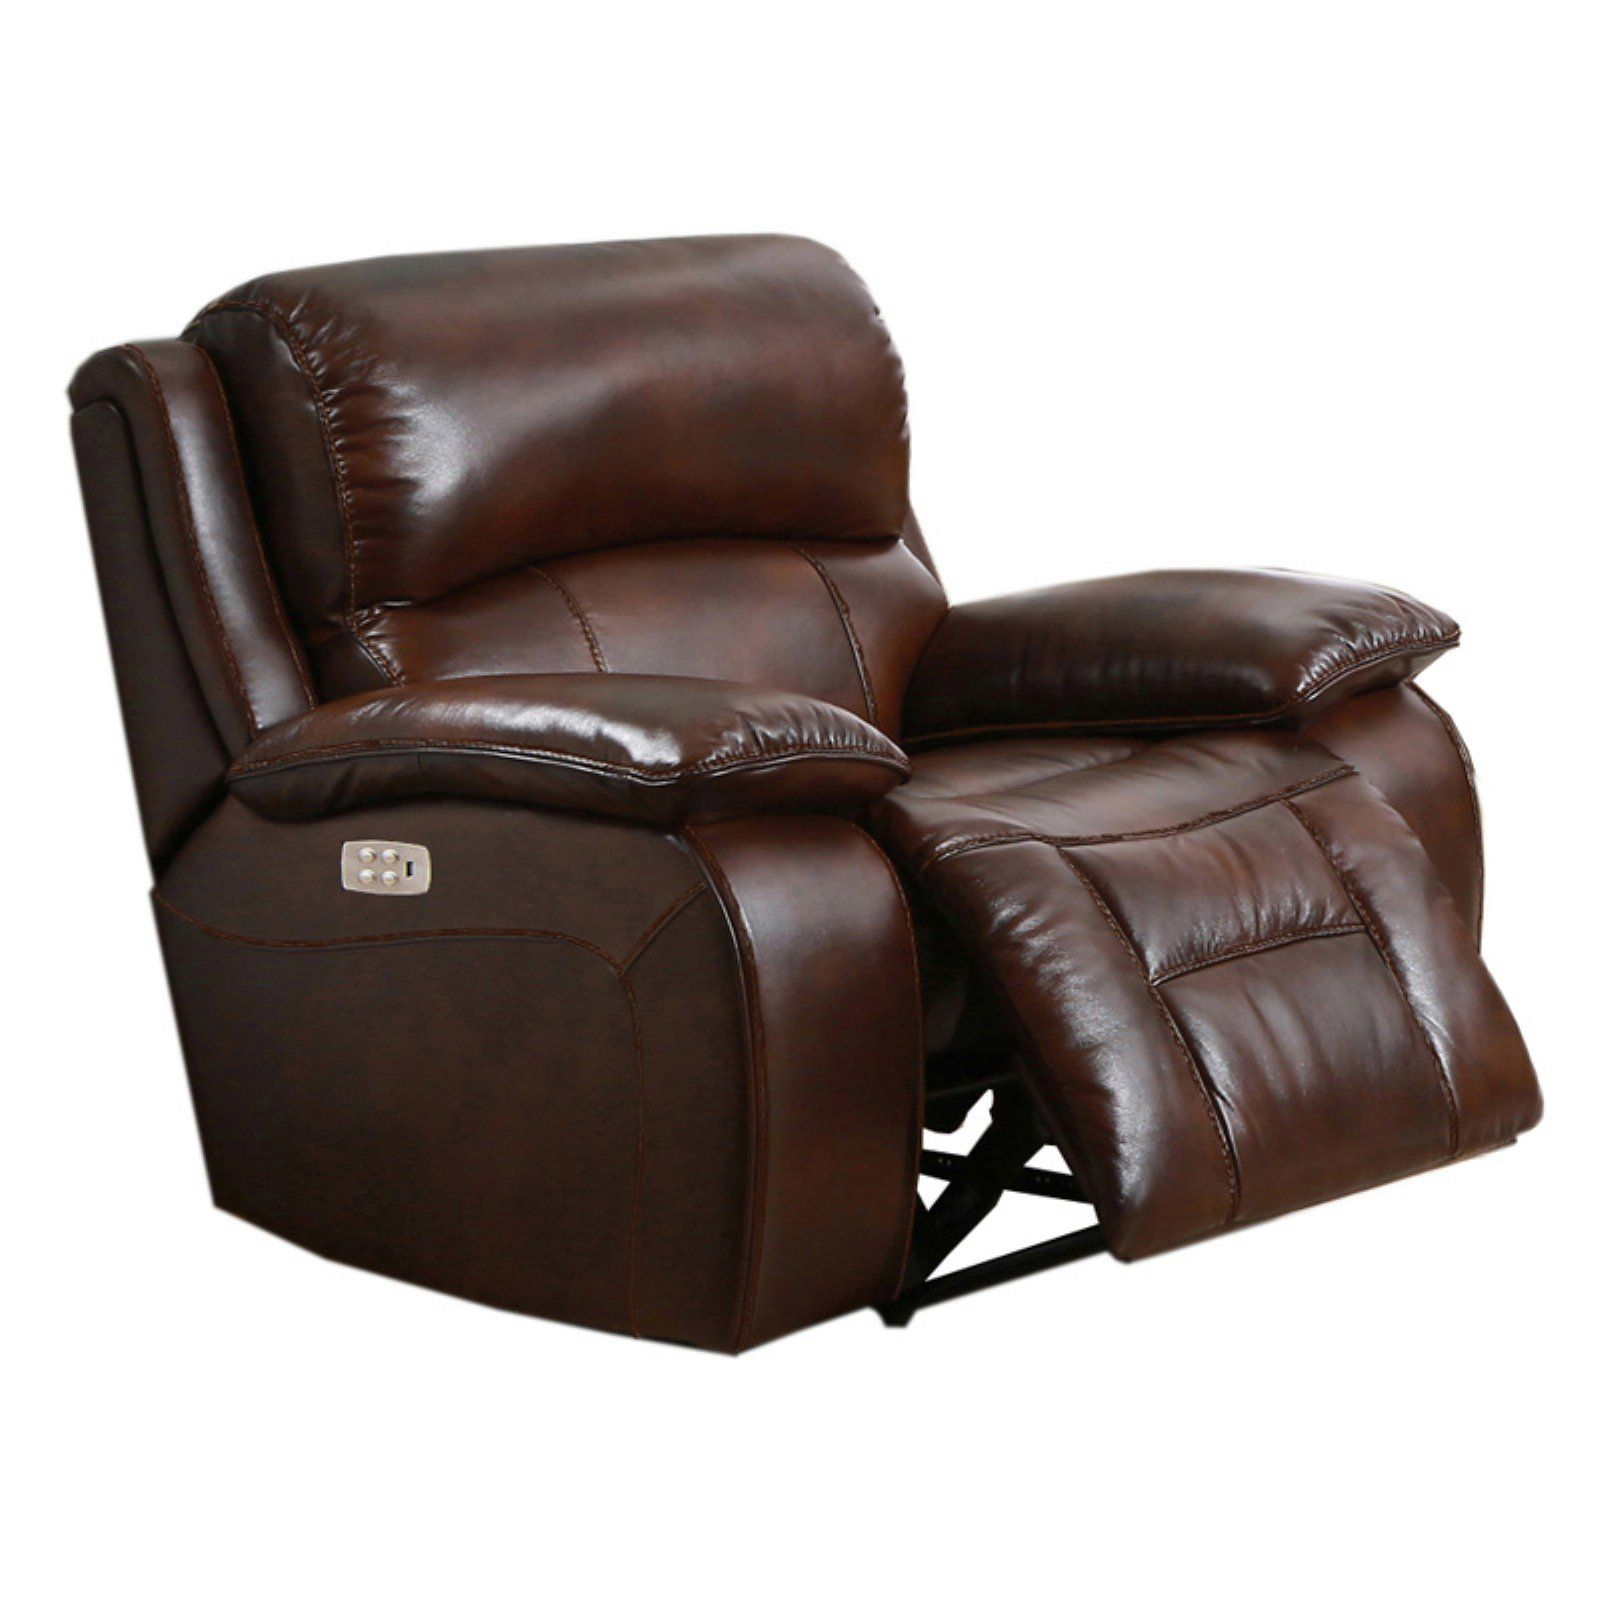 - Amax Leather Westminster II Top Grain Leather Power Recliner